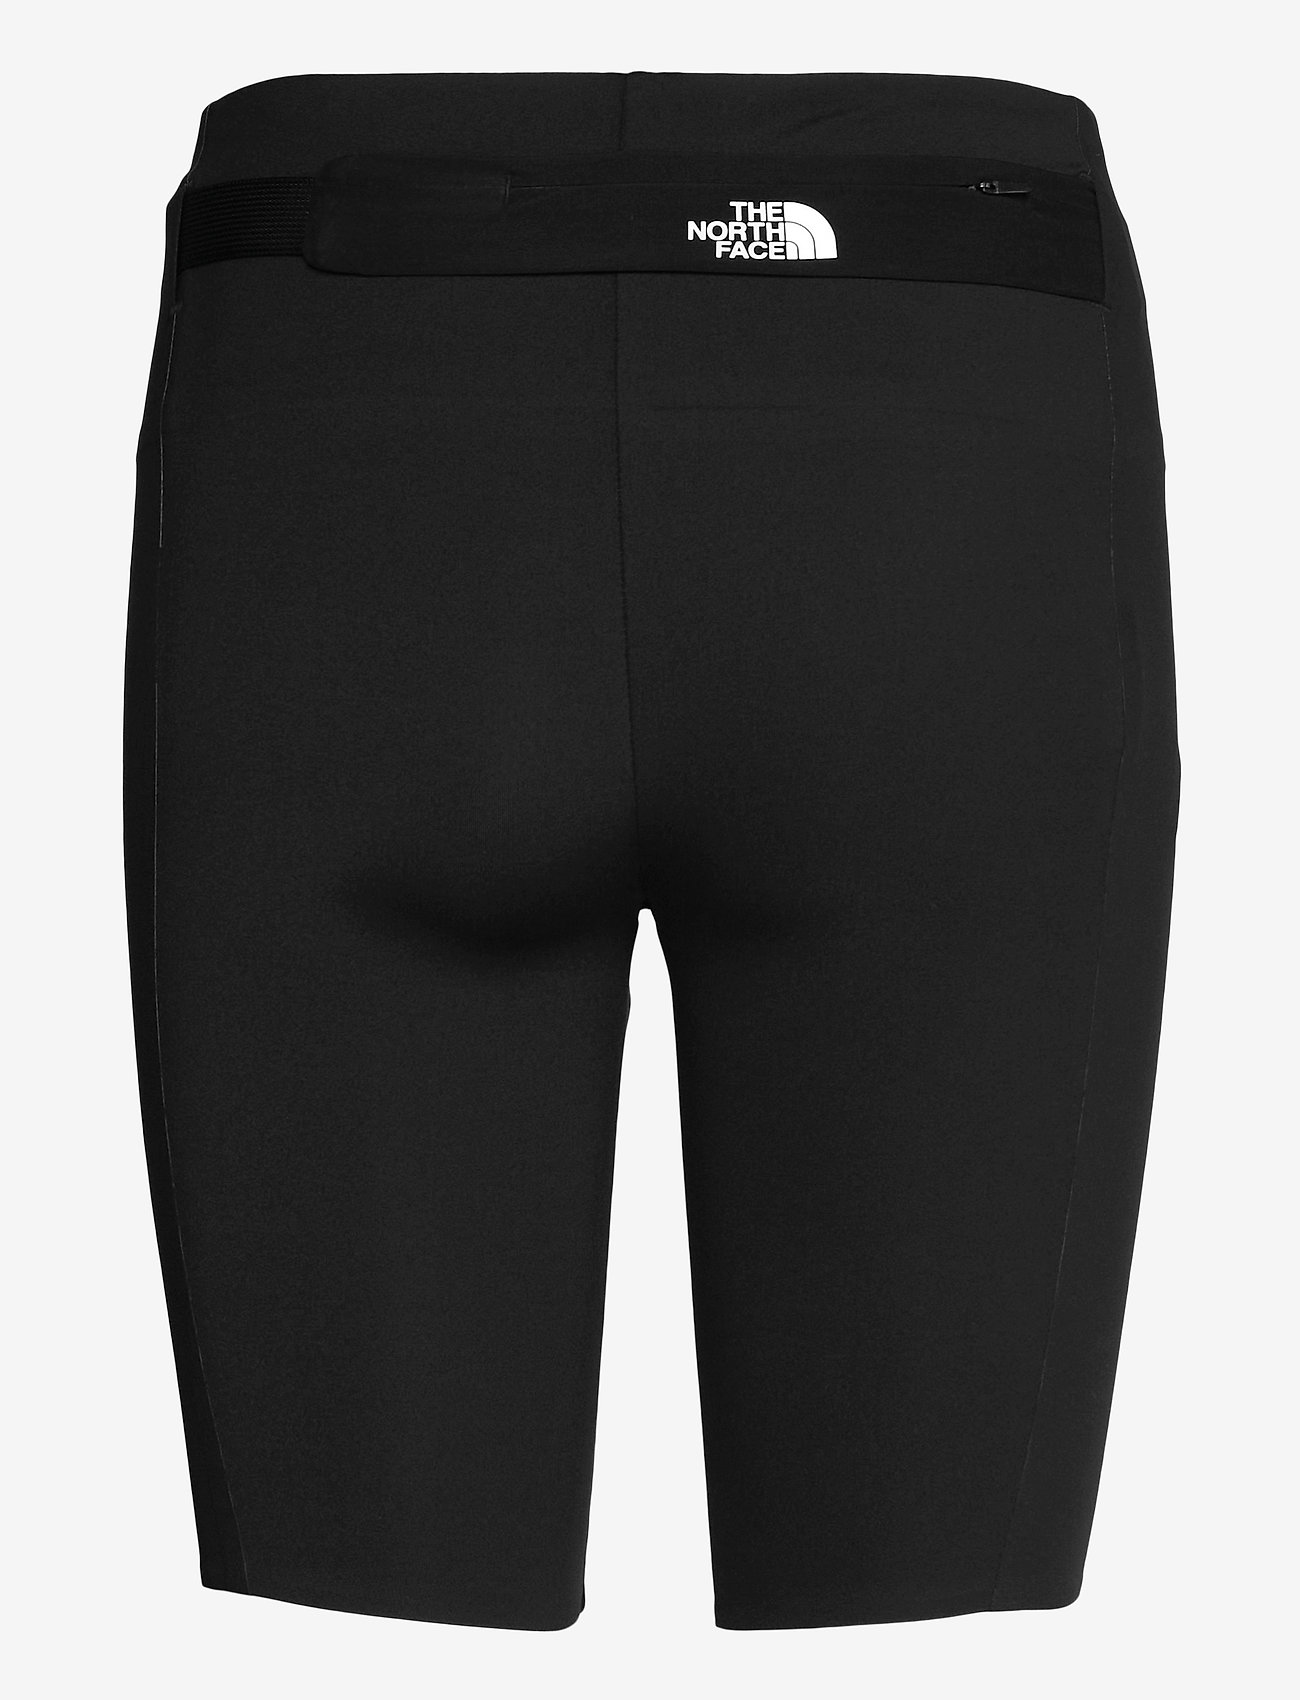 The North Face - W WAIST PACK SHORT - wandel korte broek - tnf black - 1